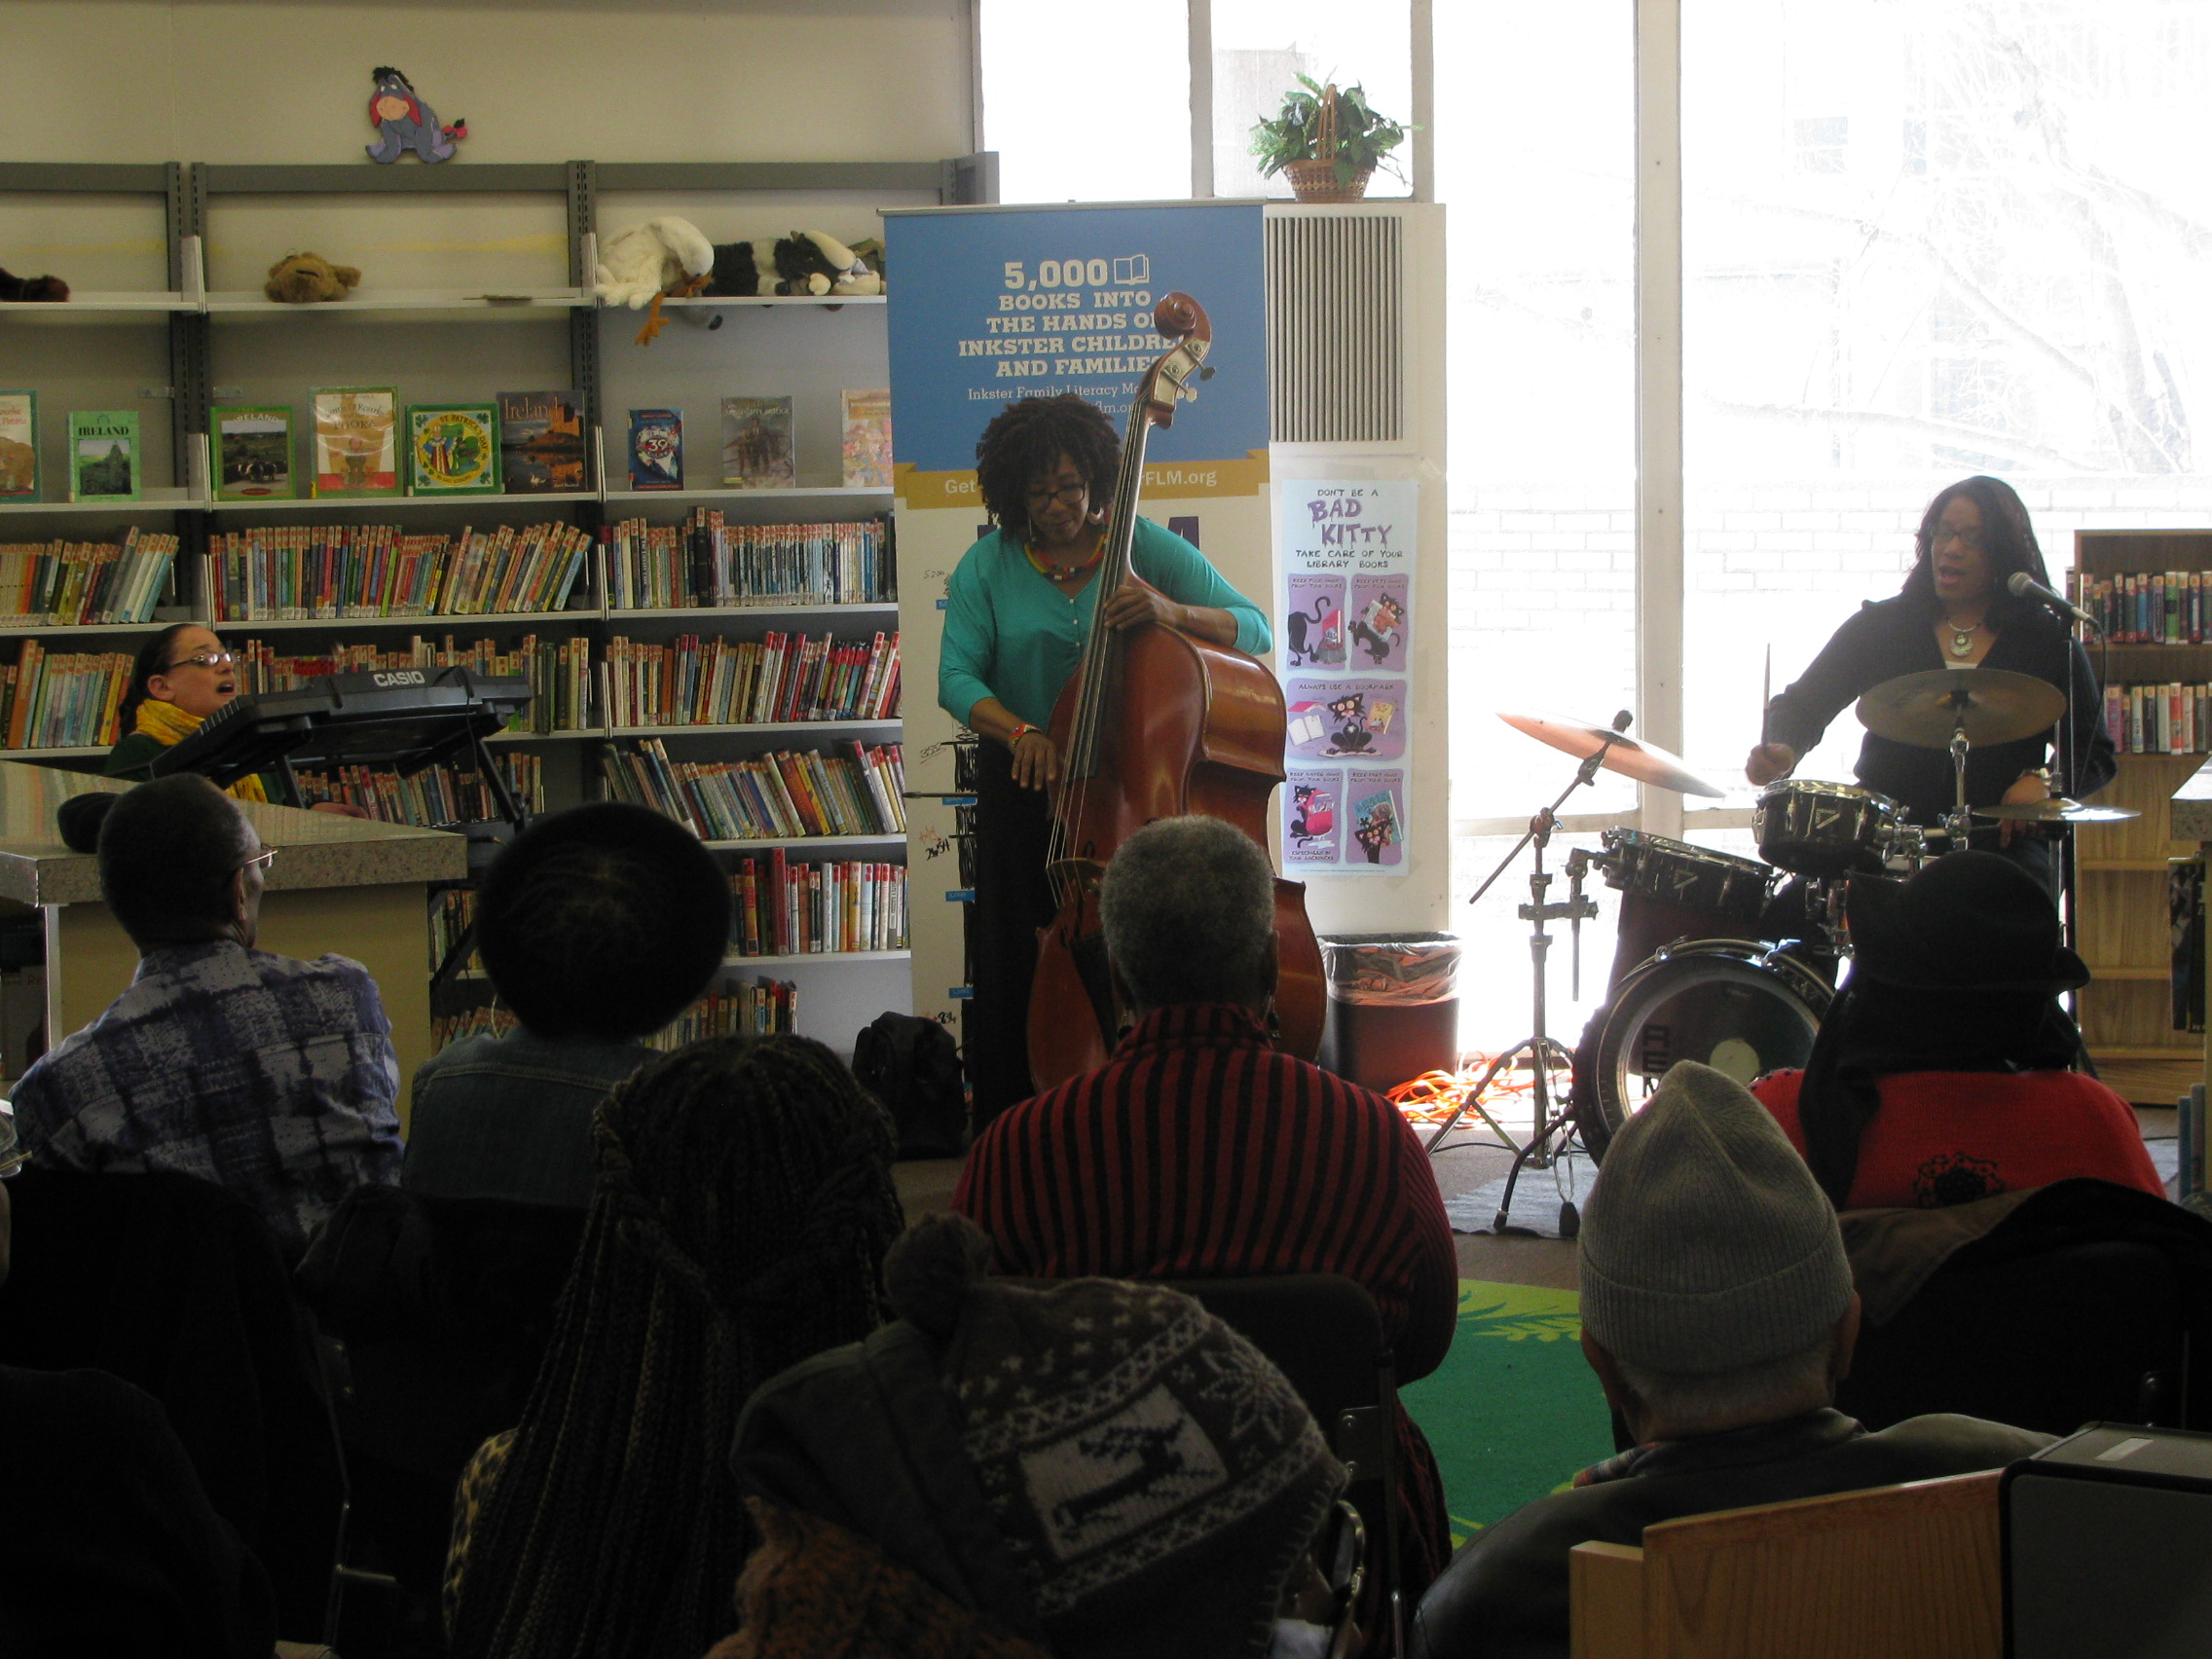 Straight Ahead put on a great show that was enjoyed by many at the our library!